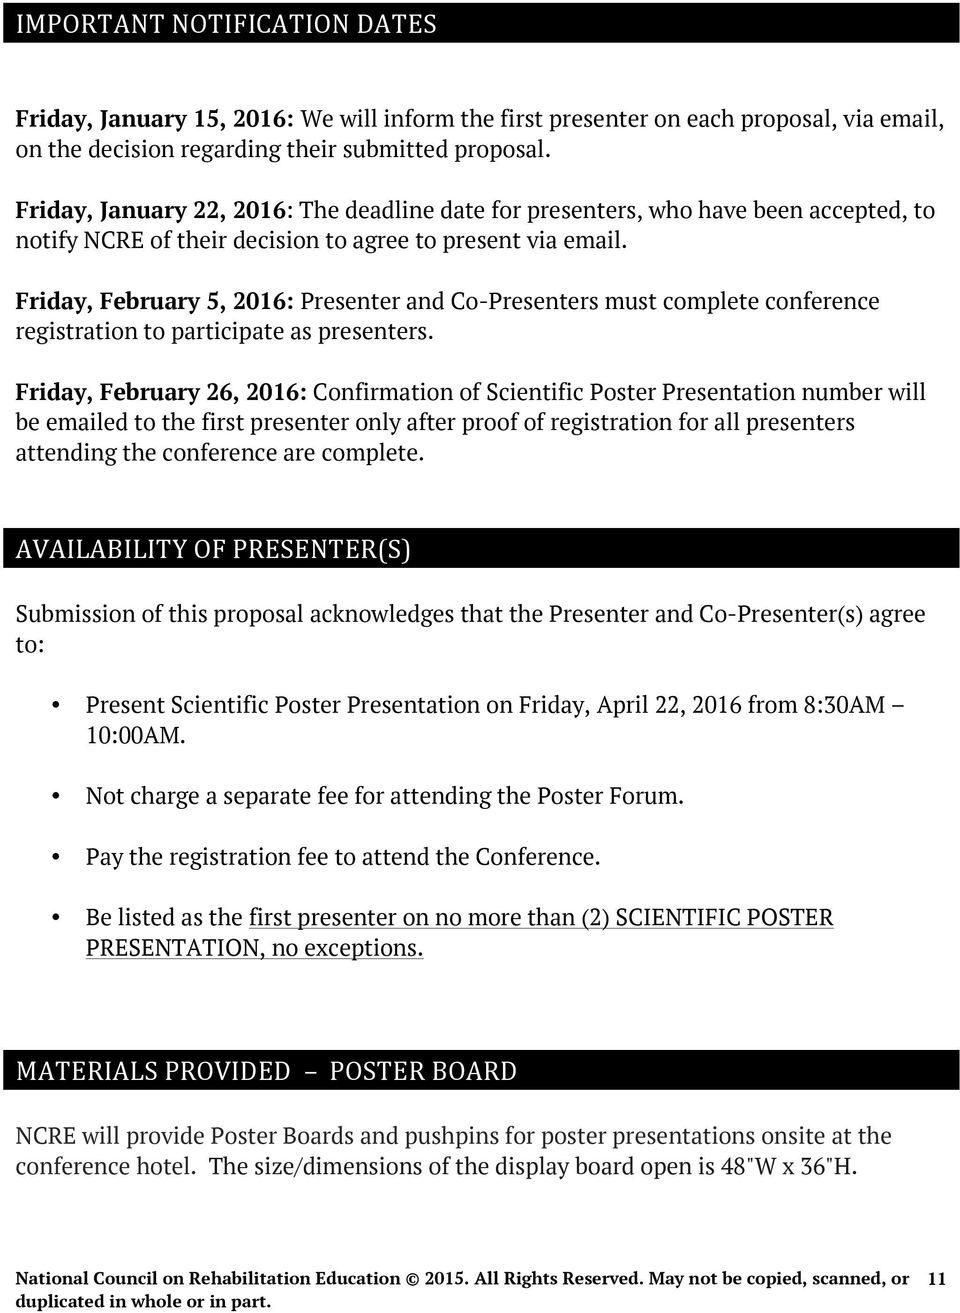 Friday, February 5, 2016: Presenter and Co-Presenters must complete conference registration to participate as presenters.